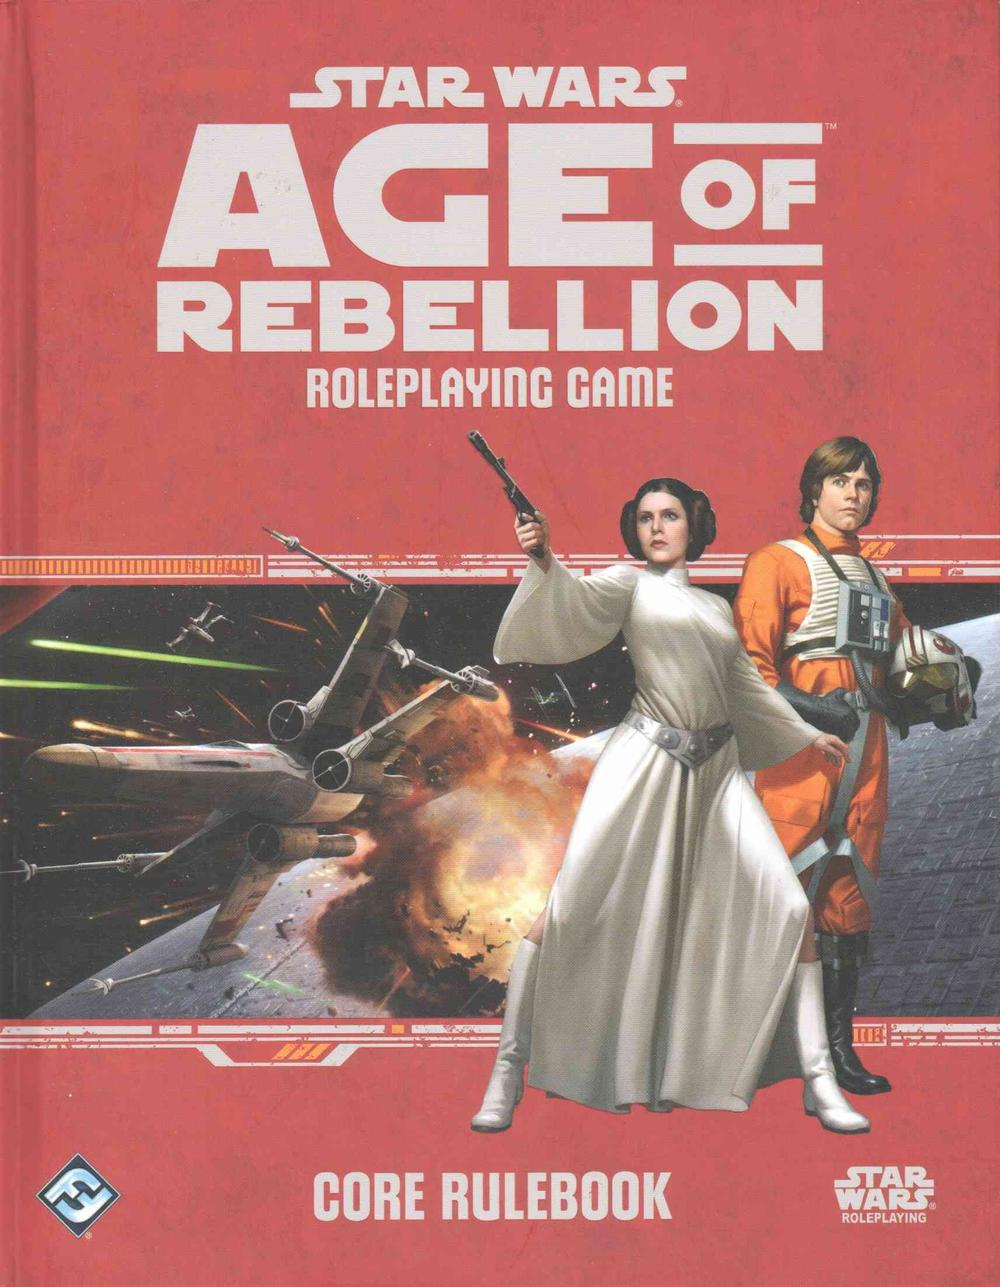 Star Wars: Age of Rebellion Roleplaying Game Core Rulebook